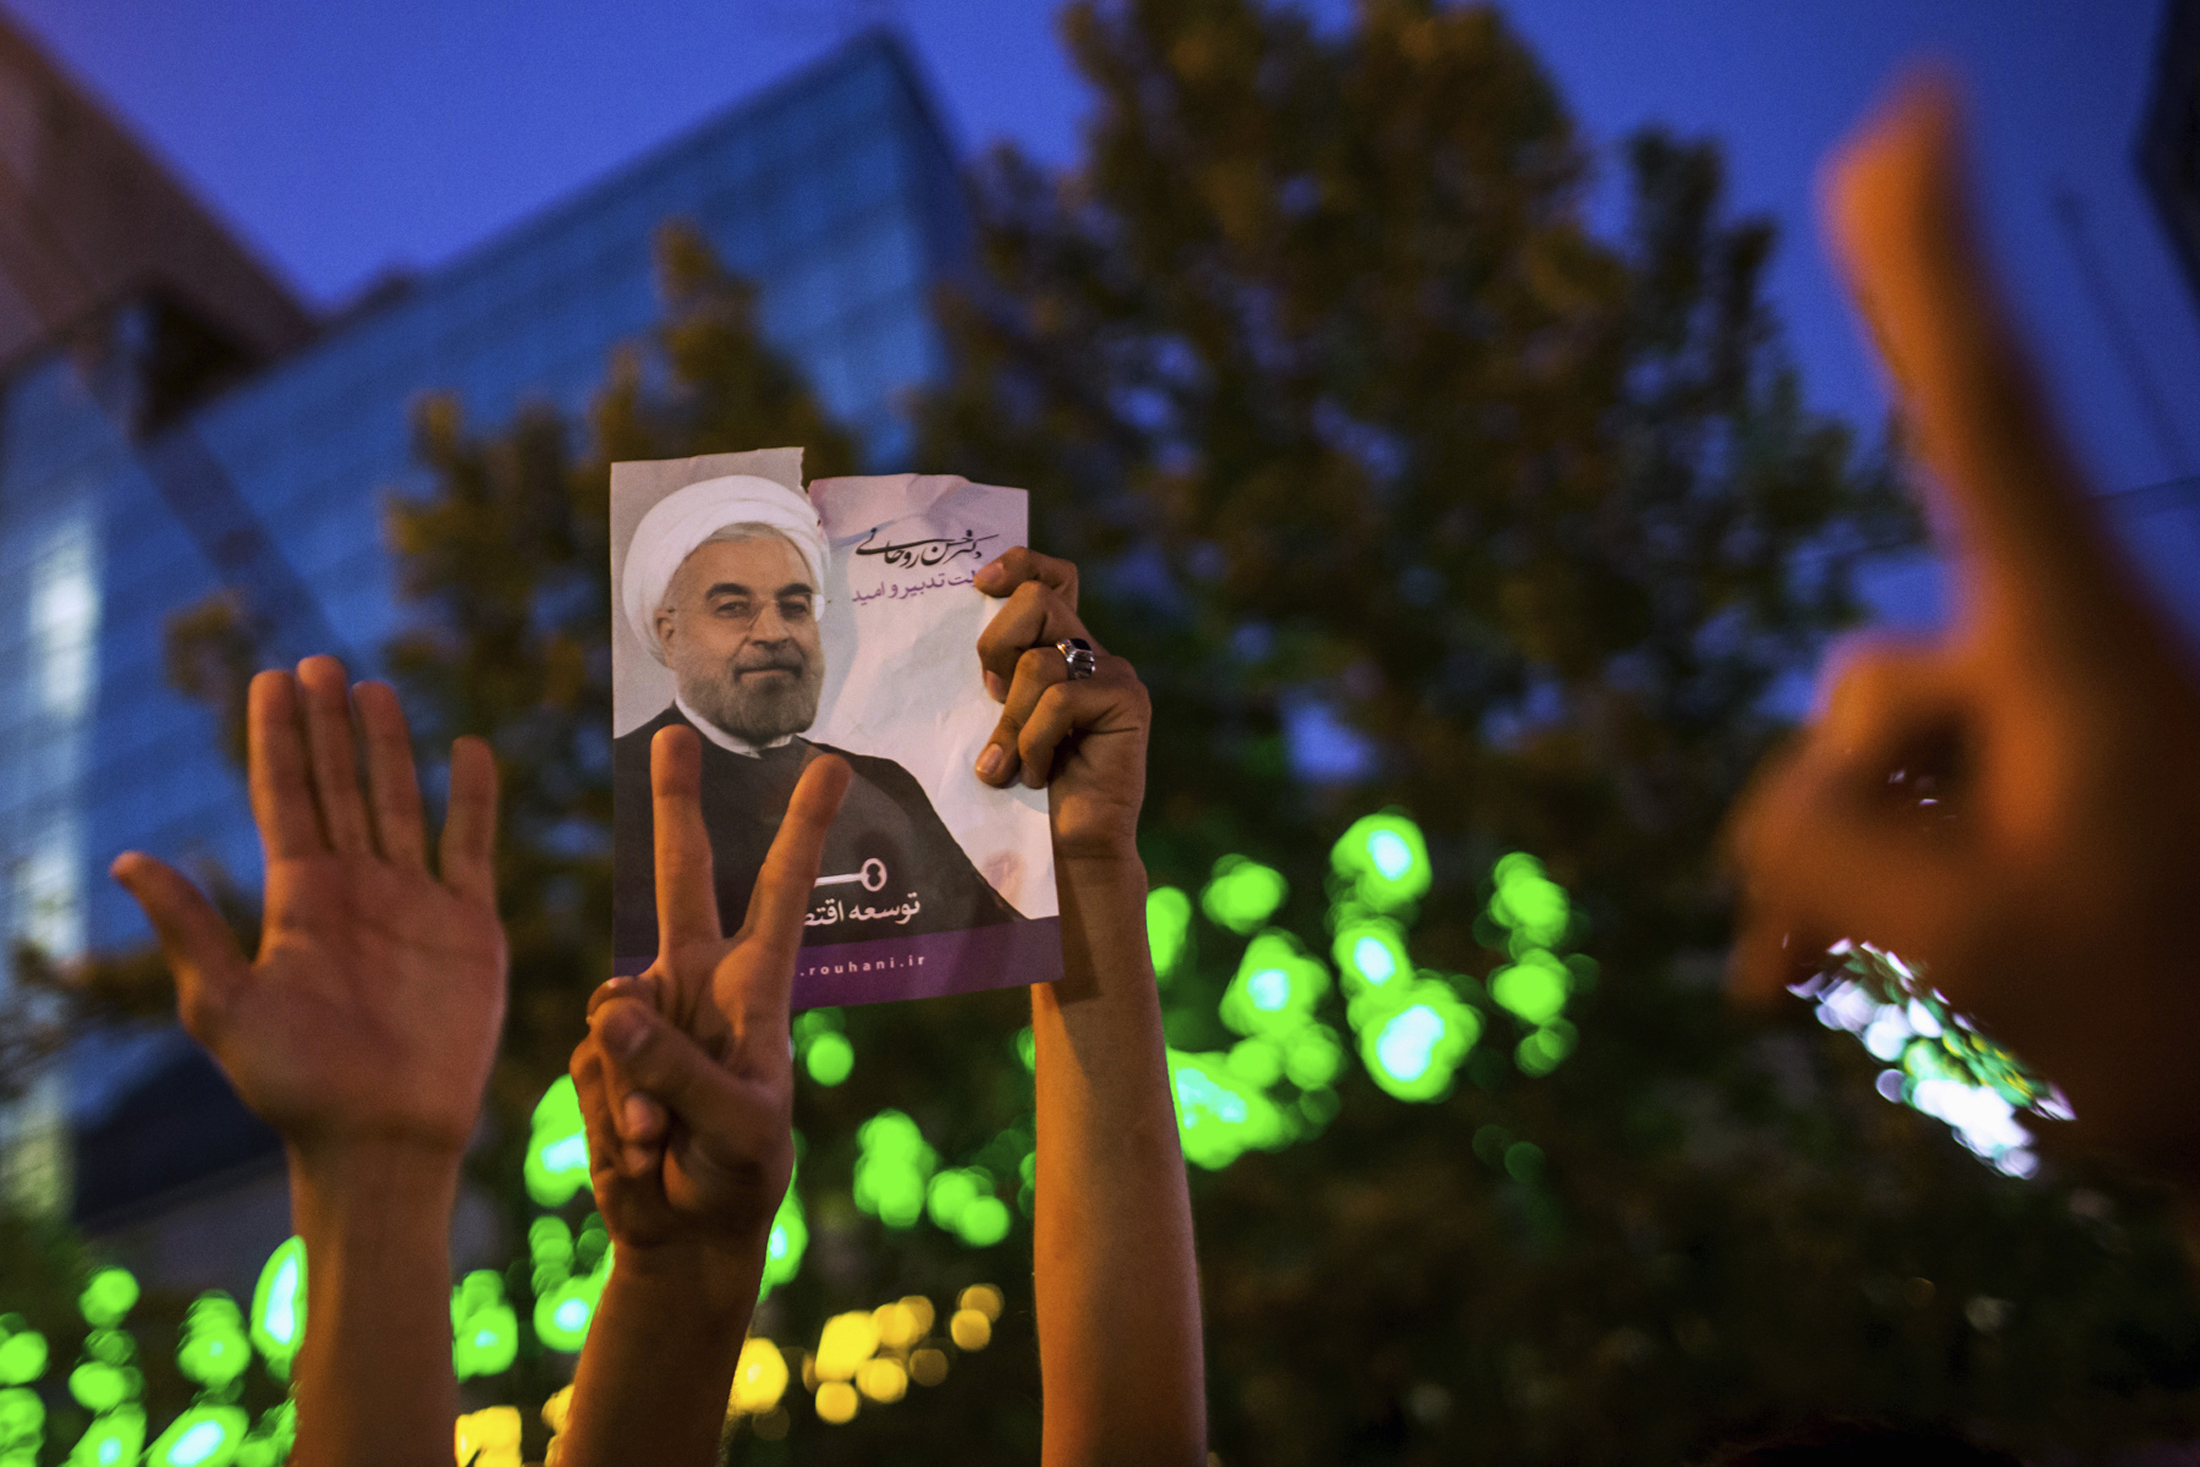 The-election-of-moderate-cleric-Hassan-Rohani-as-Irans-president-opened-the-path-for-negotiations-with-the-United-States.-ReutersFar-NewsSina-Shiri